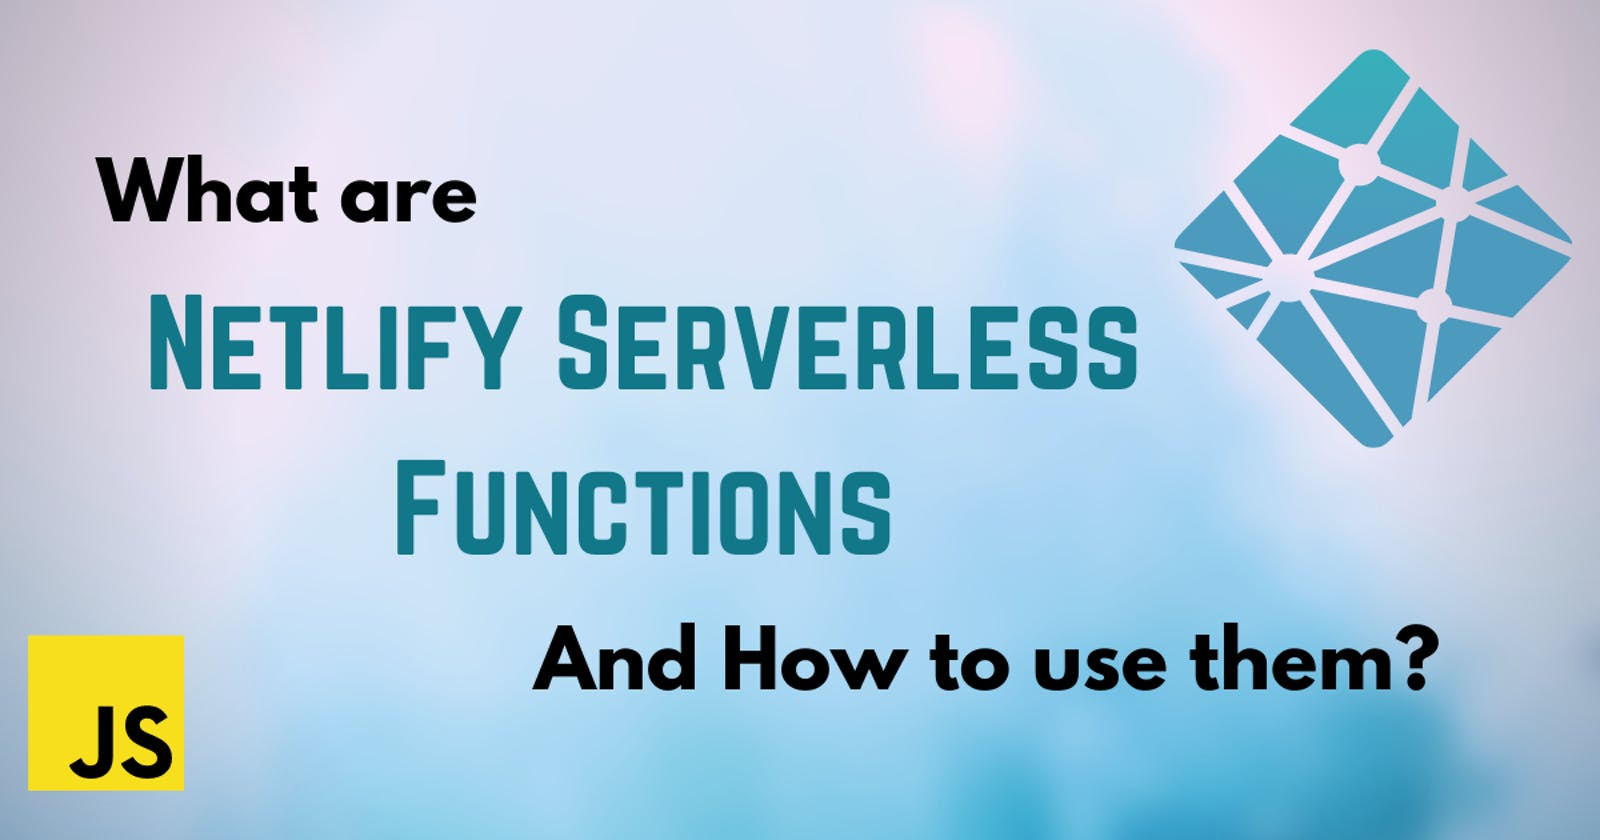 👽️ What are Netlify Serverless Functions and how to use them?